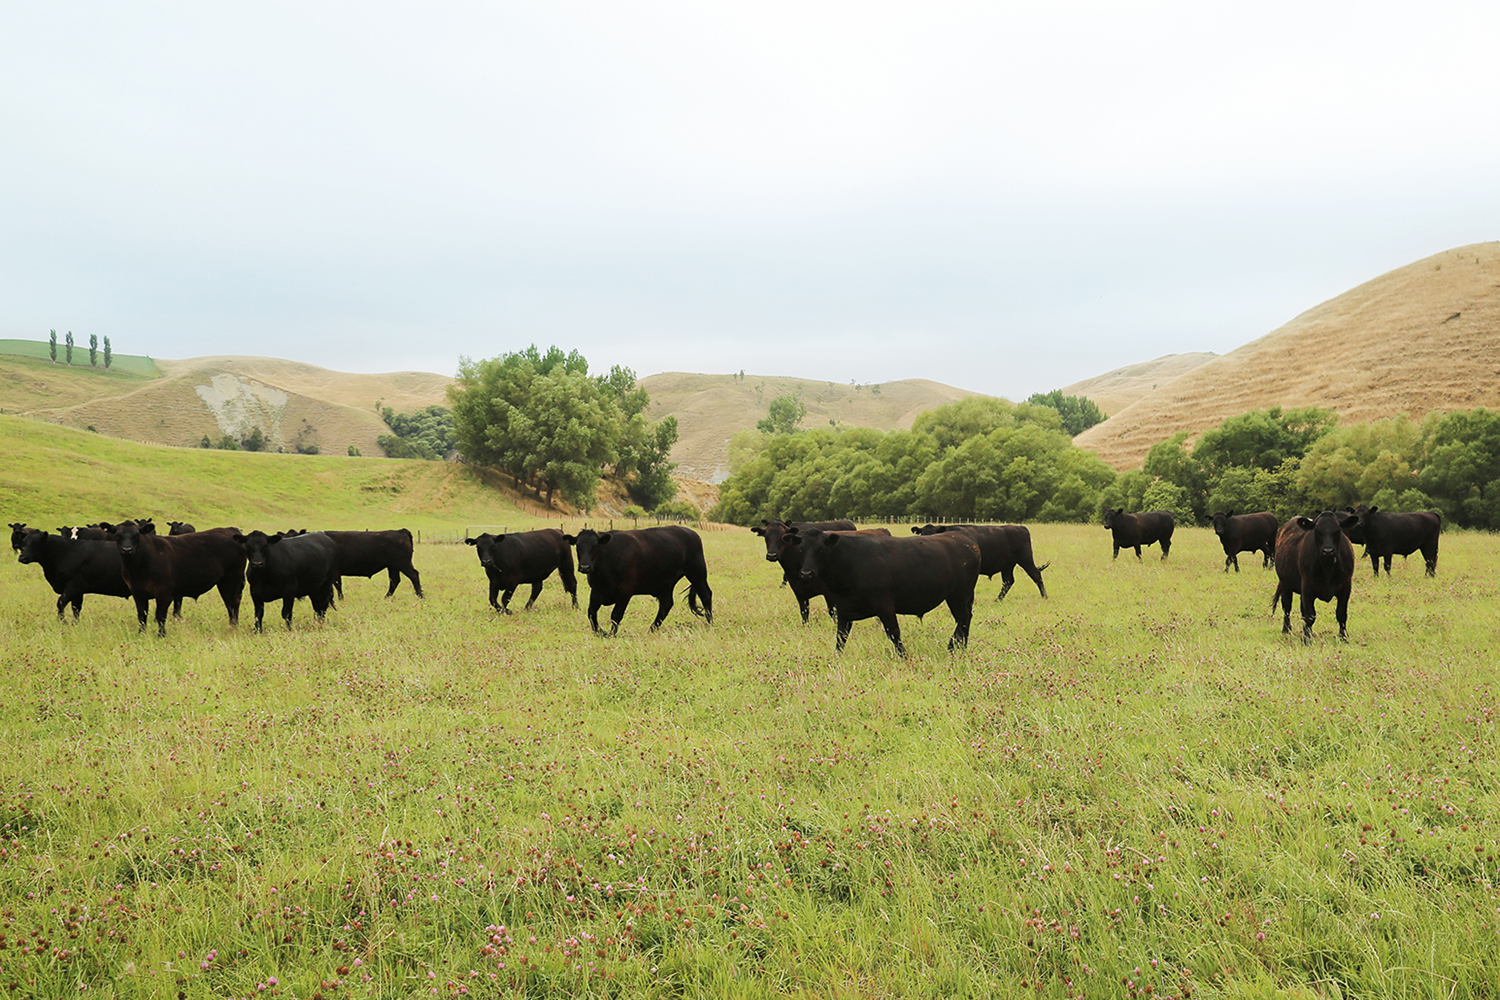 Blue apron niman ranch - Our Story